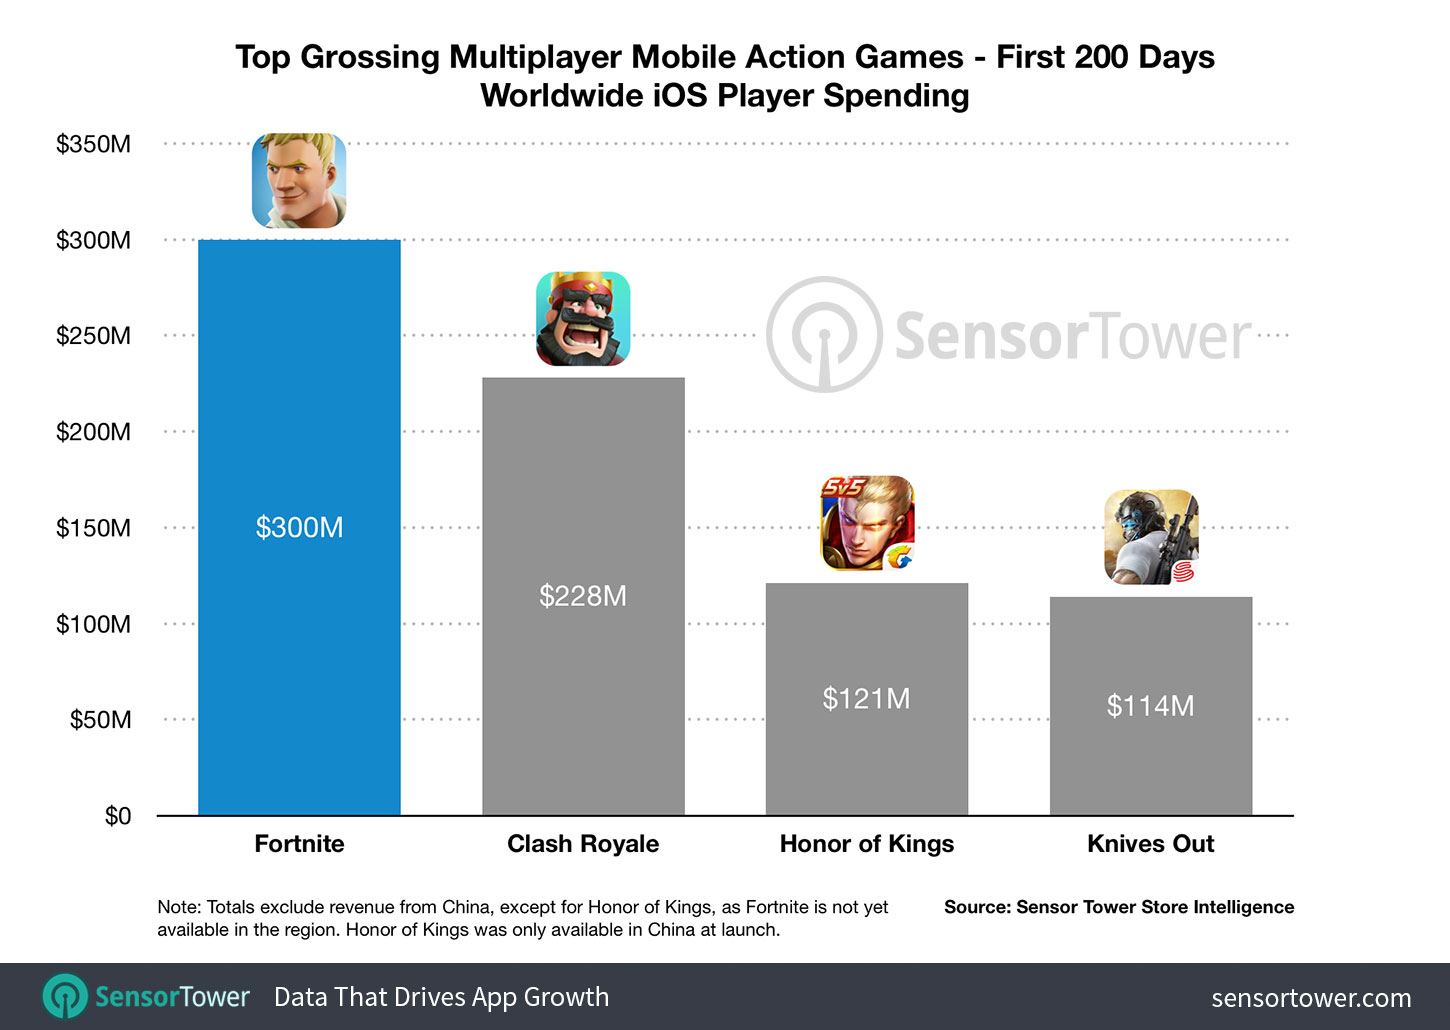 Chart showing Fortnite's gross revenue on iOS in its first 200 days compared to other top grossing mobile multiplayer games